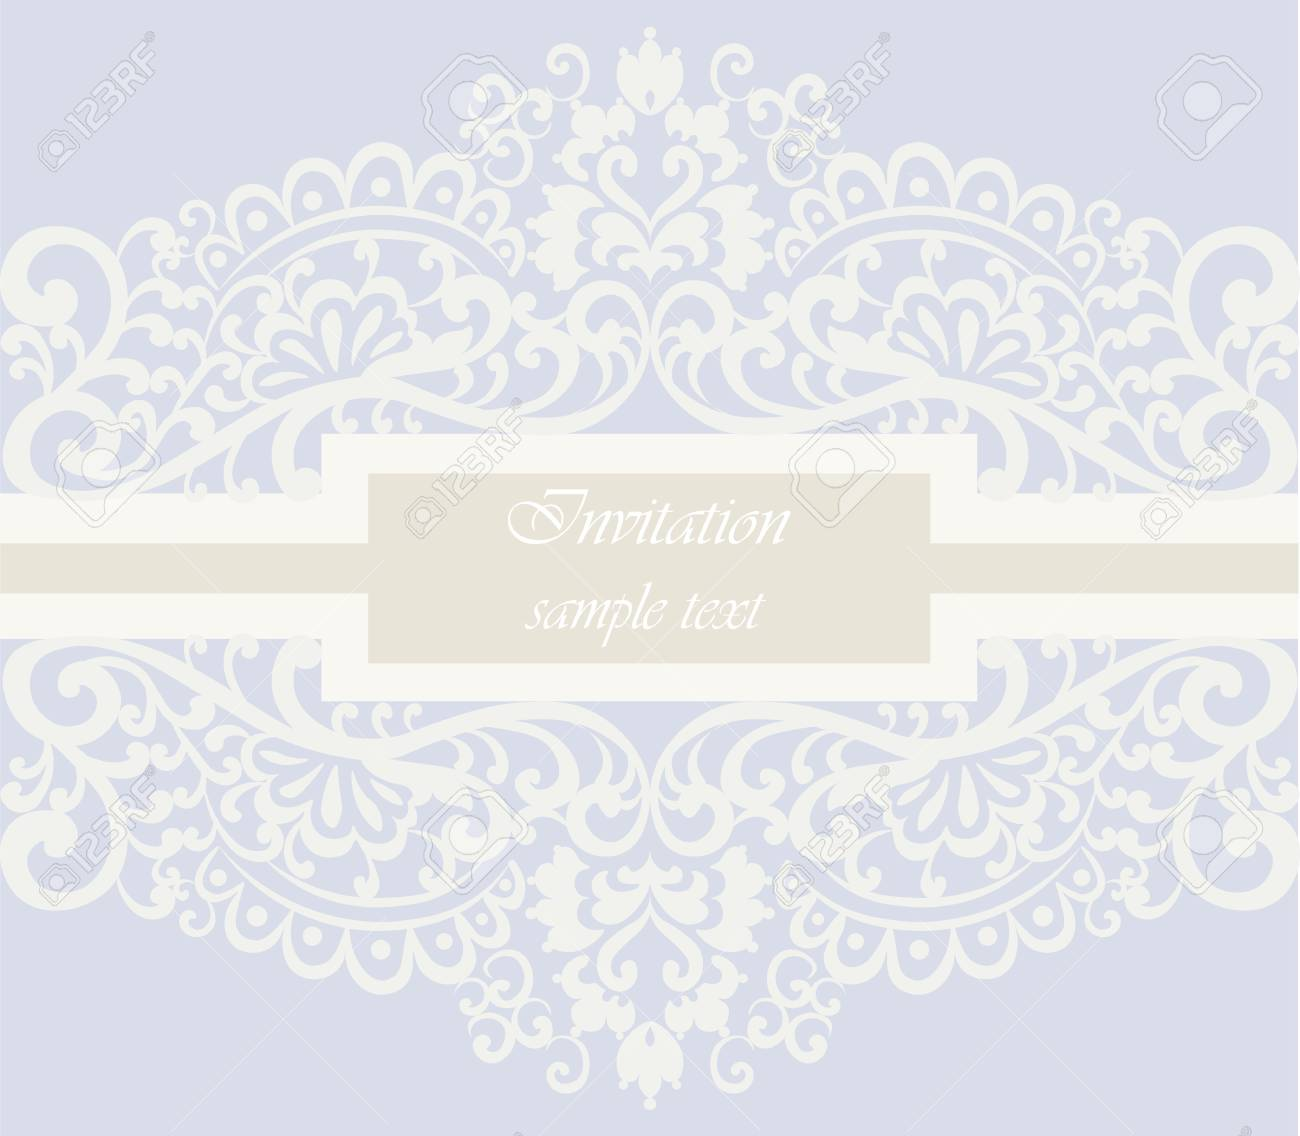 Wedding Invitation Card With Lace Ornament. Serenity Color. Vector ...